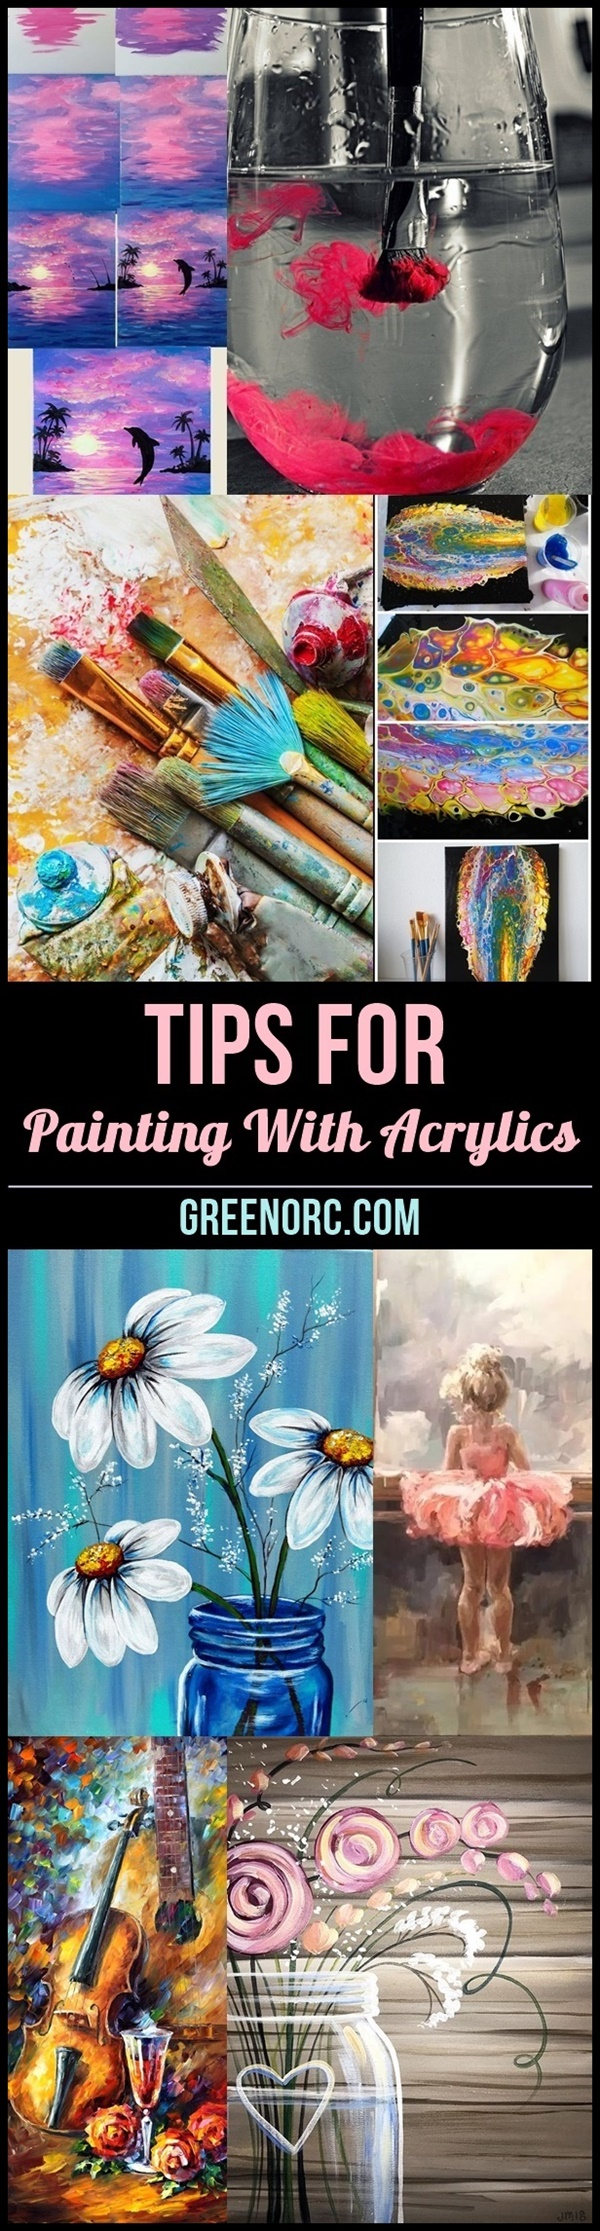 Tips For Painting With Acrylics